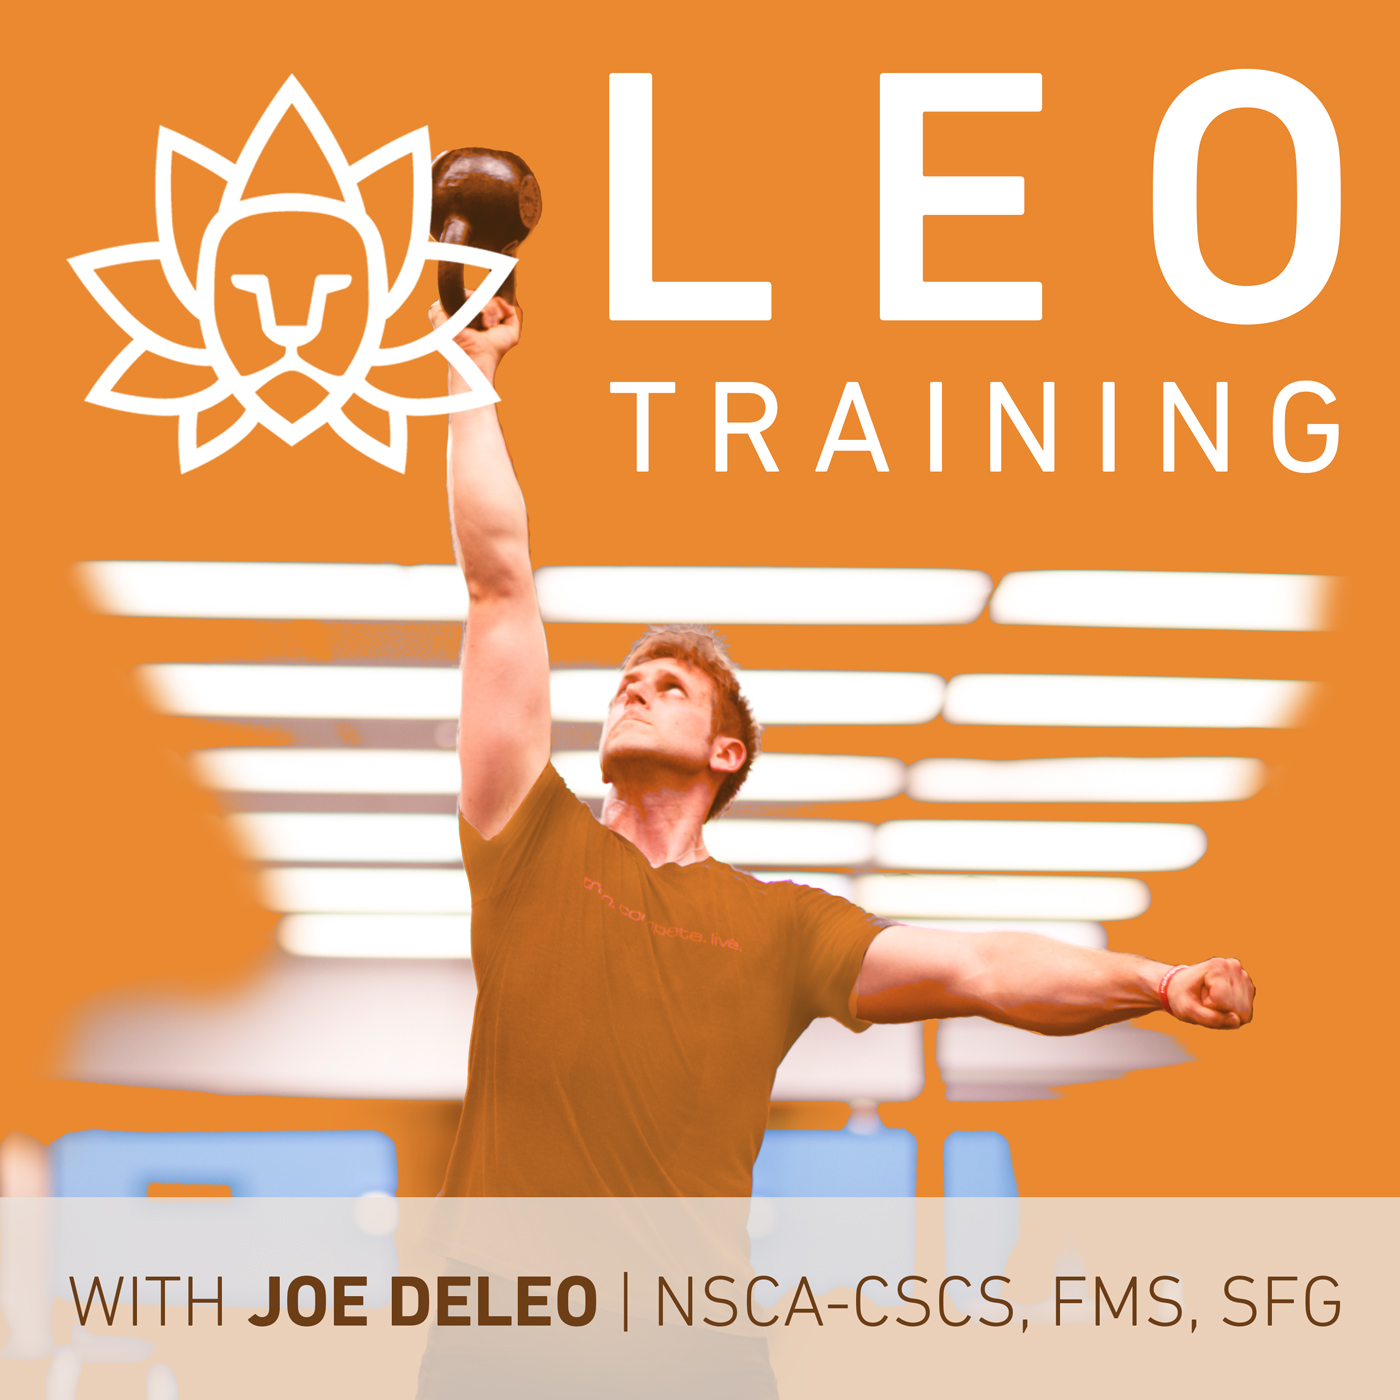 The definitive guide to pt podcasts modern manual therapy blog the leo training podcast is hosted by former rower and strength coach joe deleo with his background in both endurance and strength training especially fandeluxe Image collections